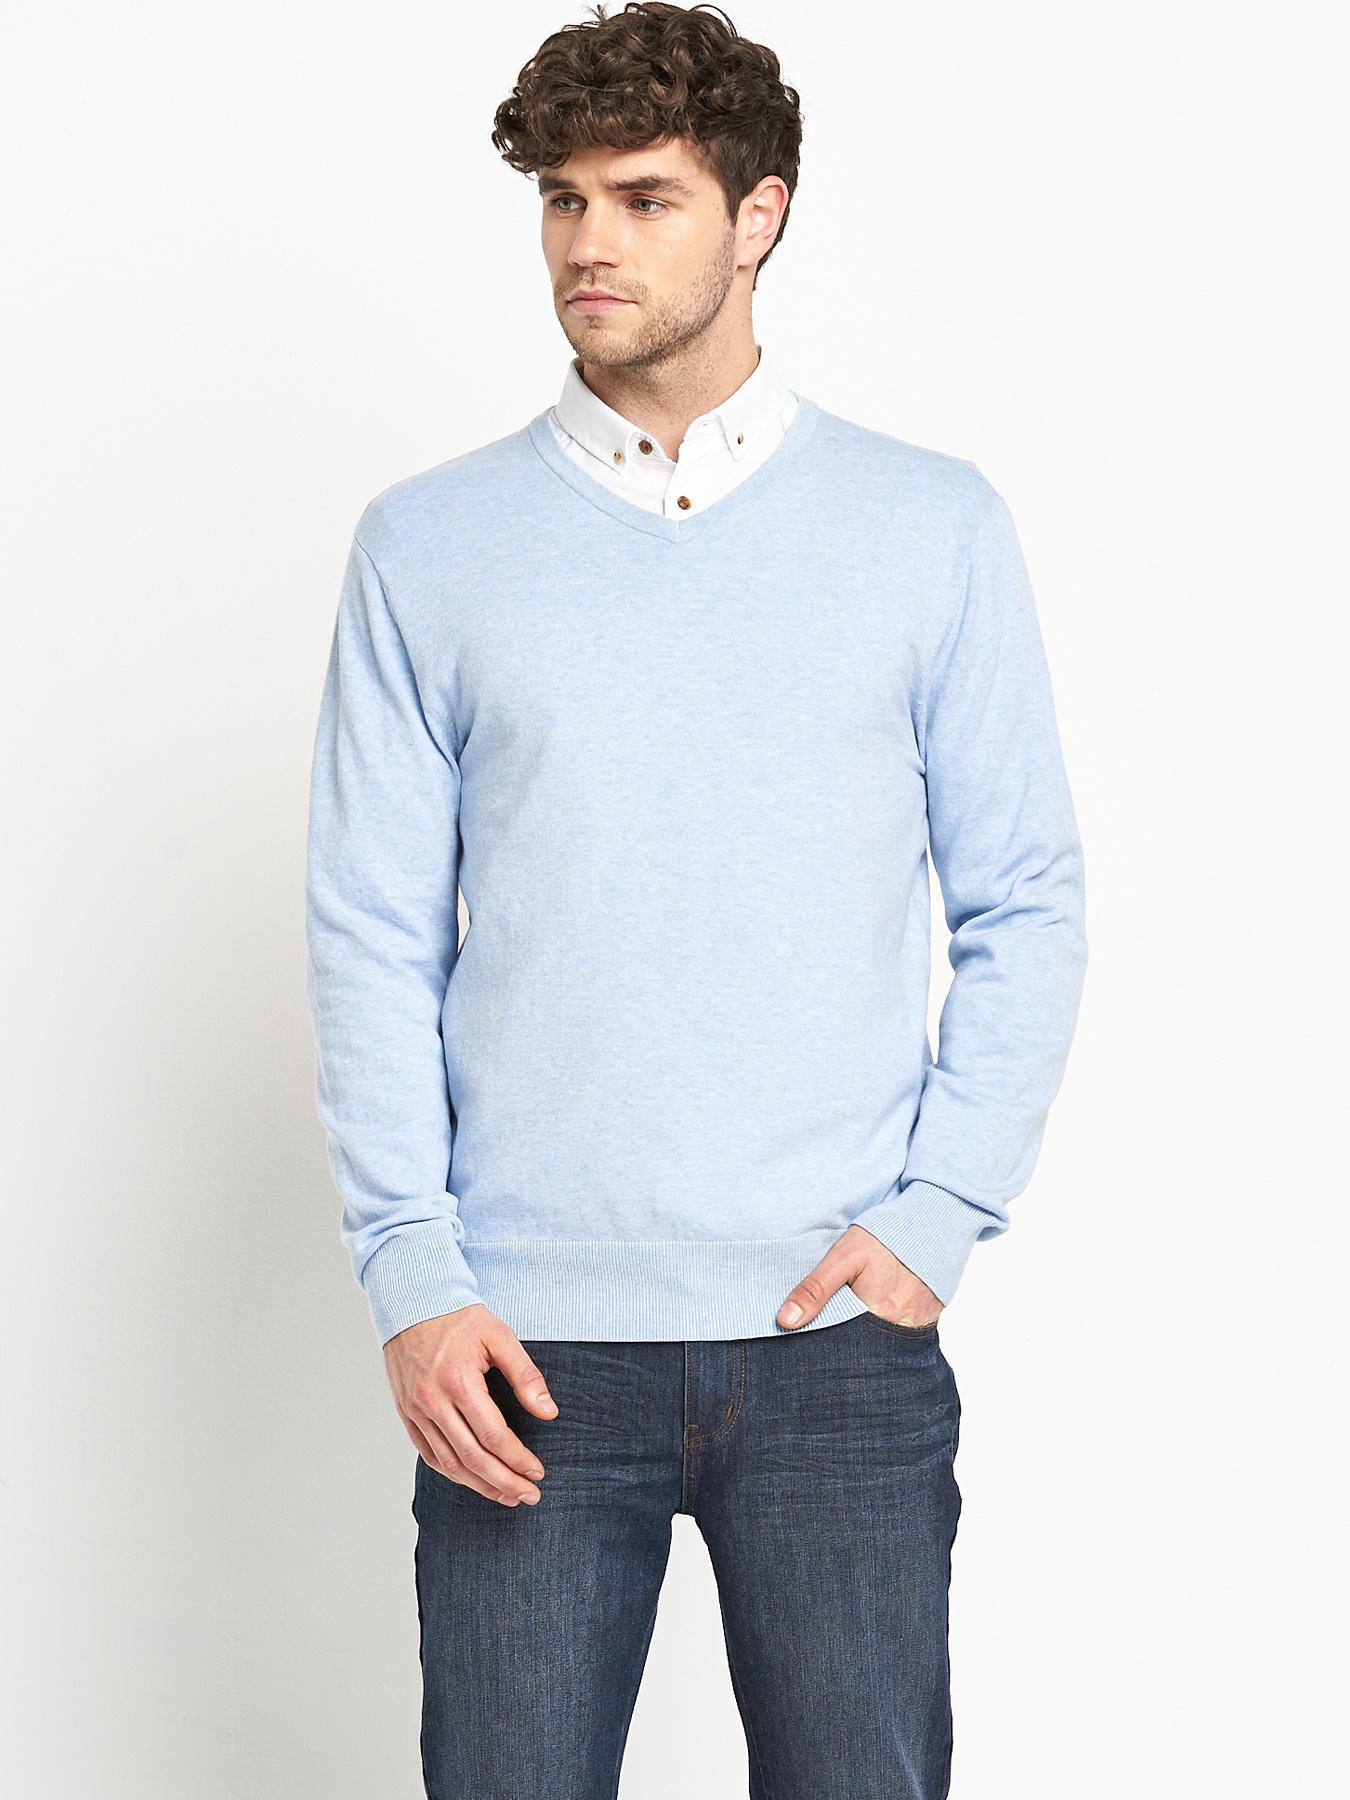 Goodsouls Mens V-Neck Jumper - Blue, Blue